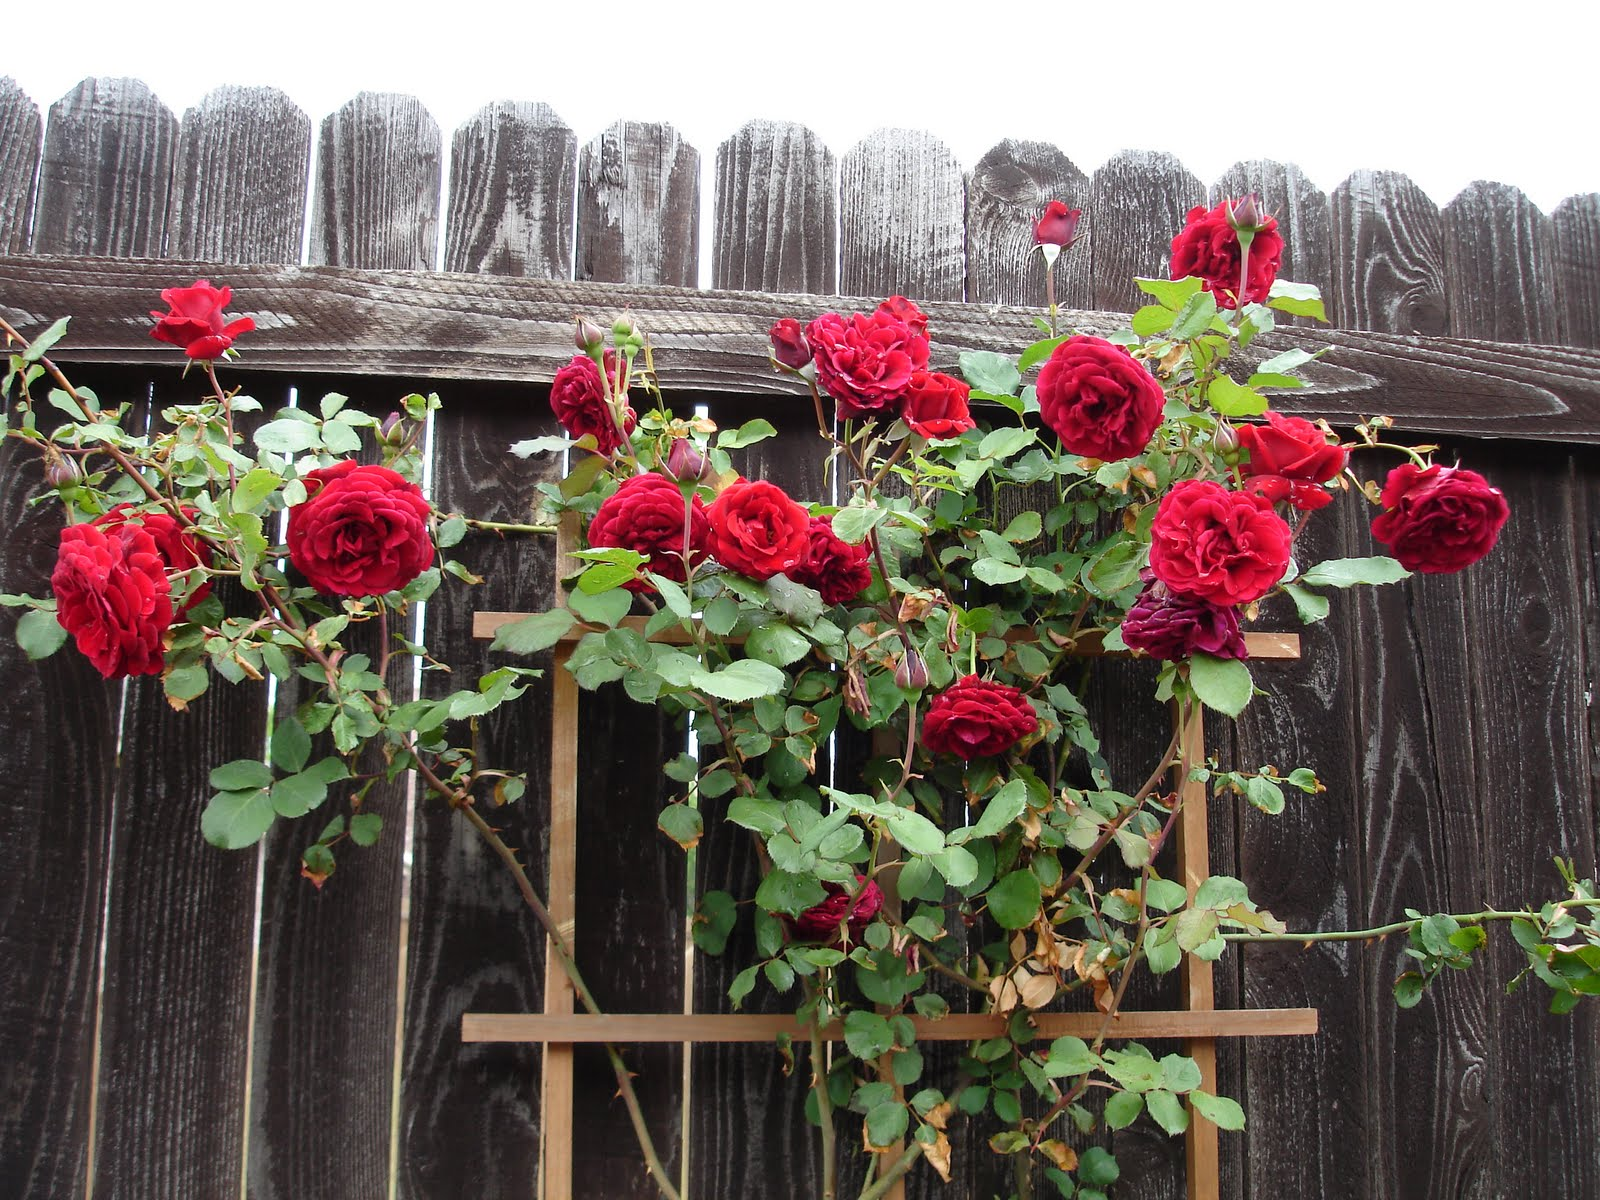 How to trim a rose bush - Pruning Roses